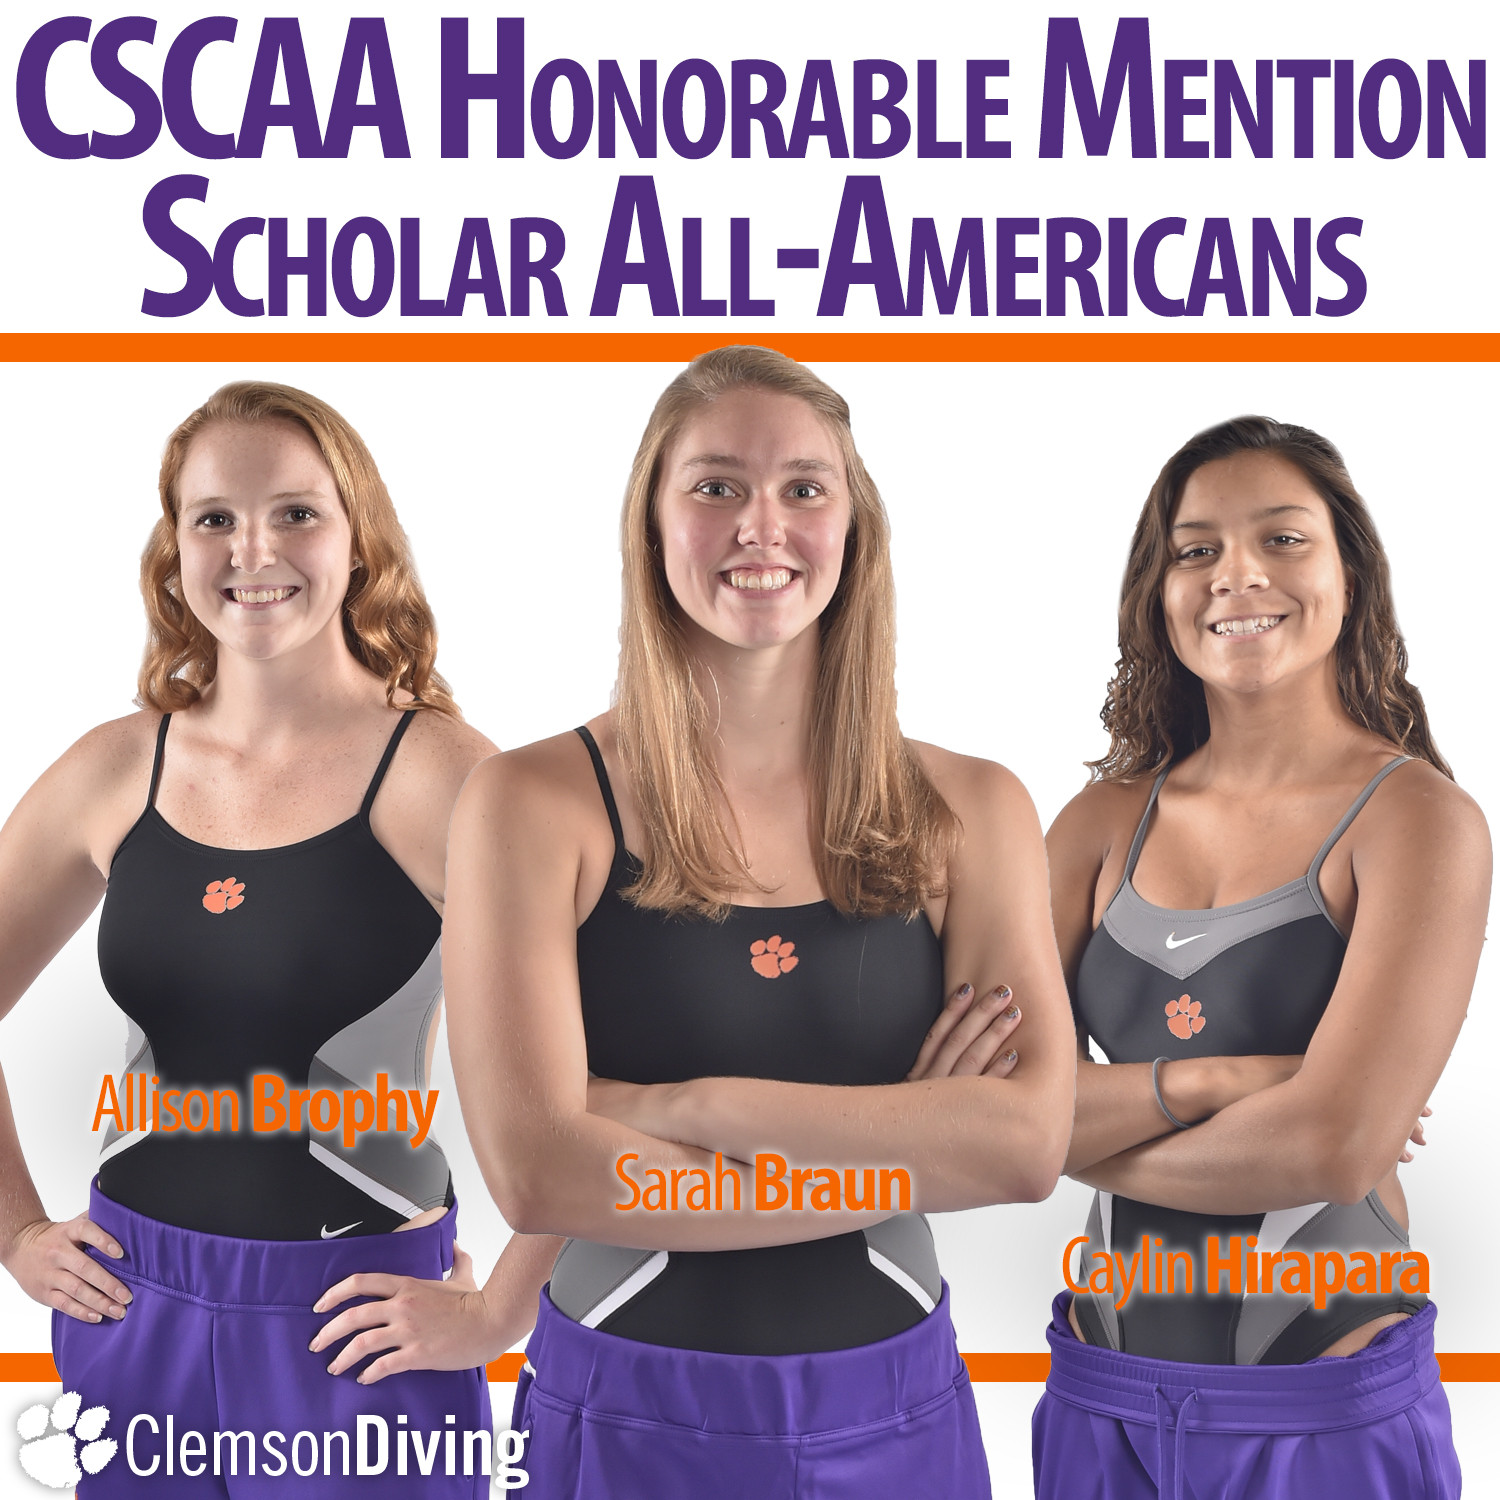 Tigers Named CSCAA Scholar All-America Team for 10th Straight Semester, Three Divers Named CSCAA Honorable Mention Scholar All-Americans